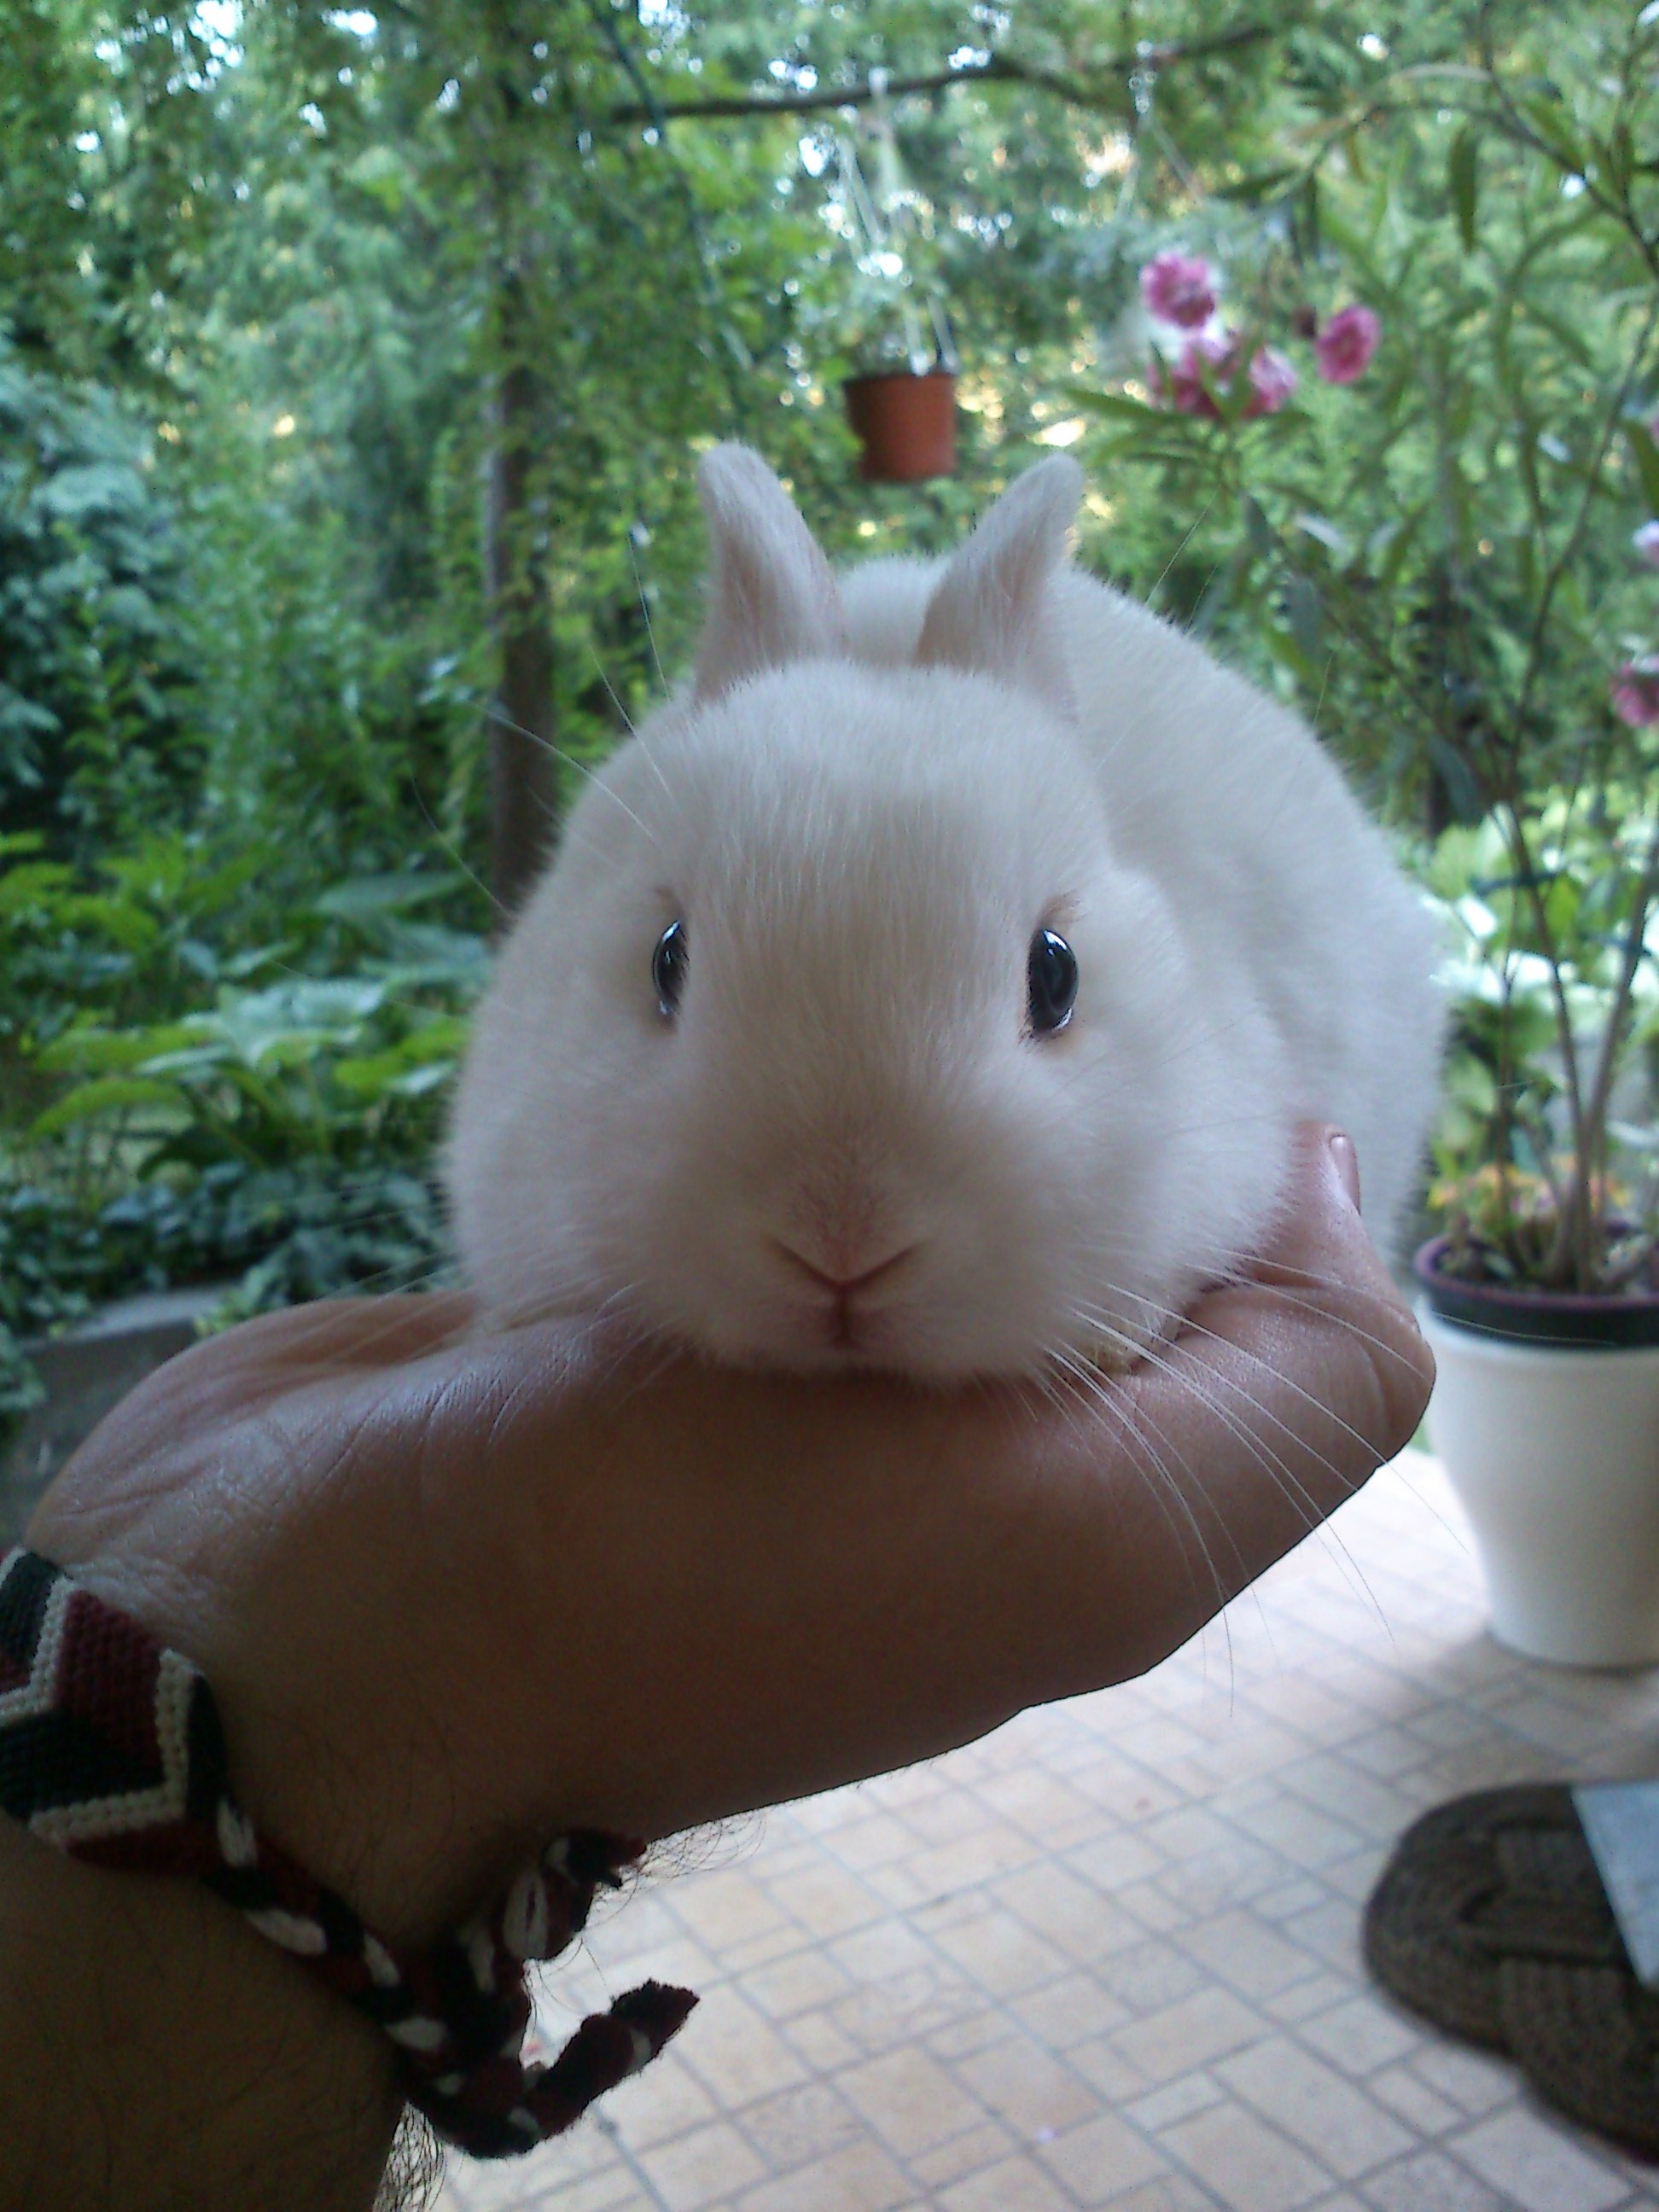 Little Bunny Fits in Owner's Hand Just Right